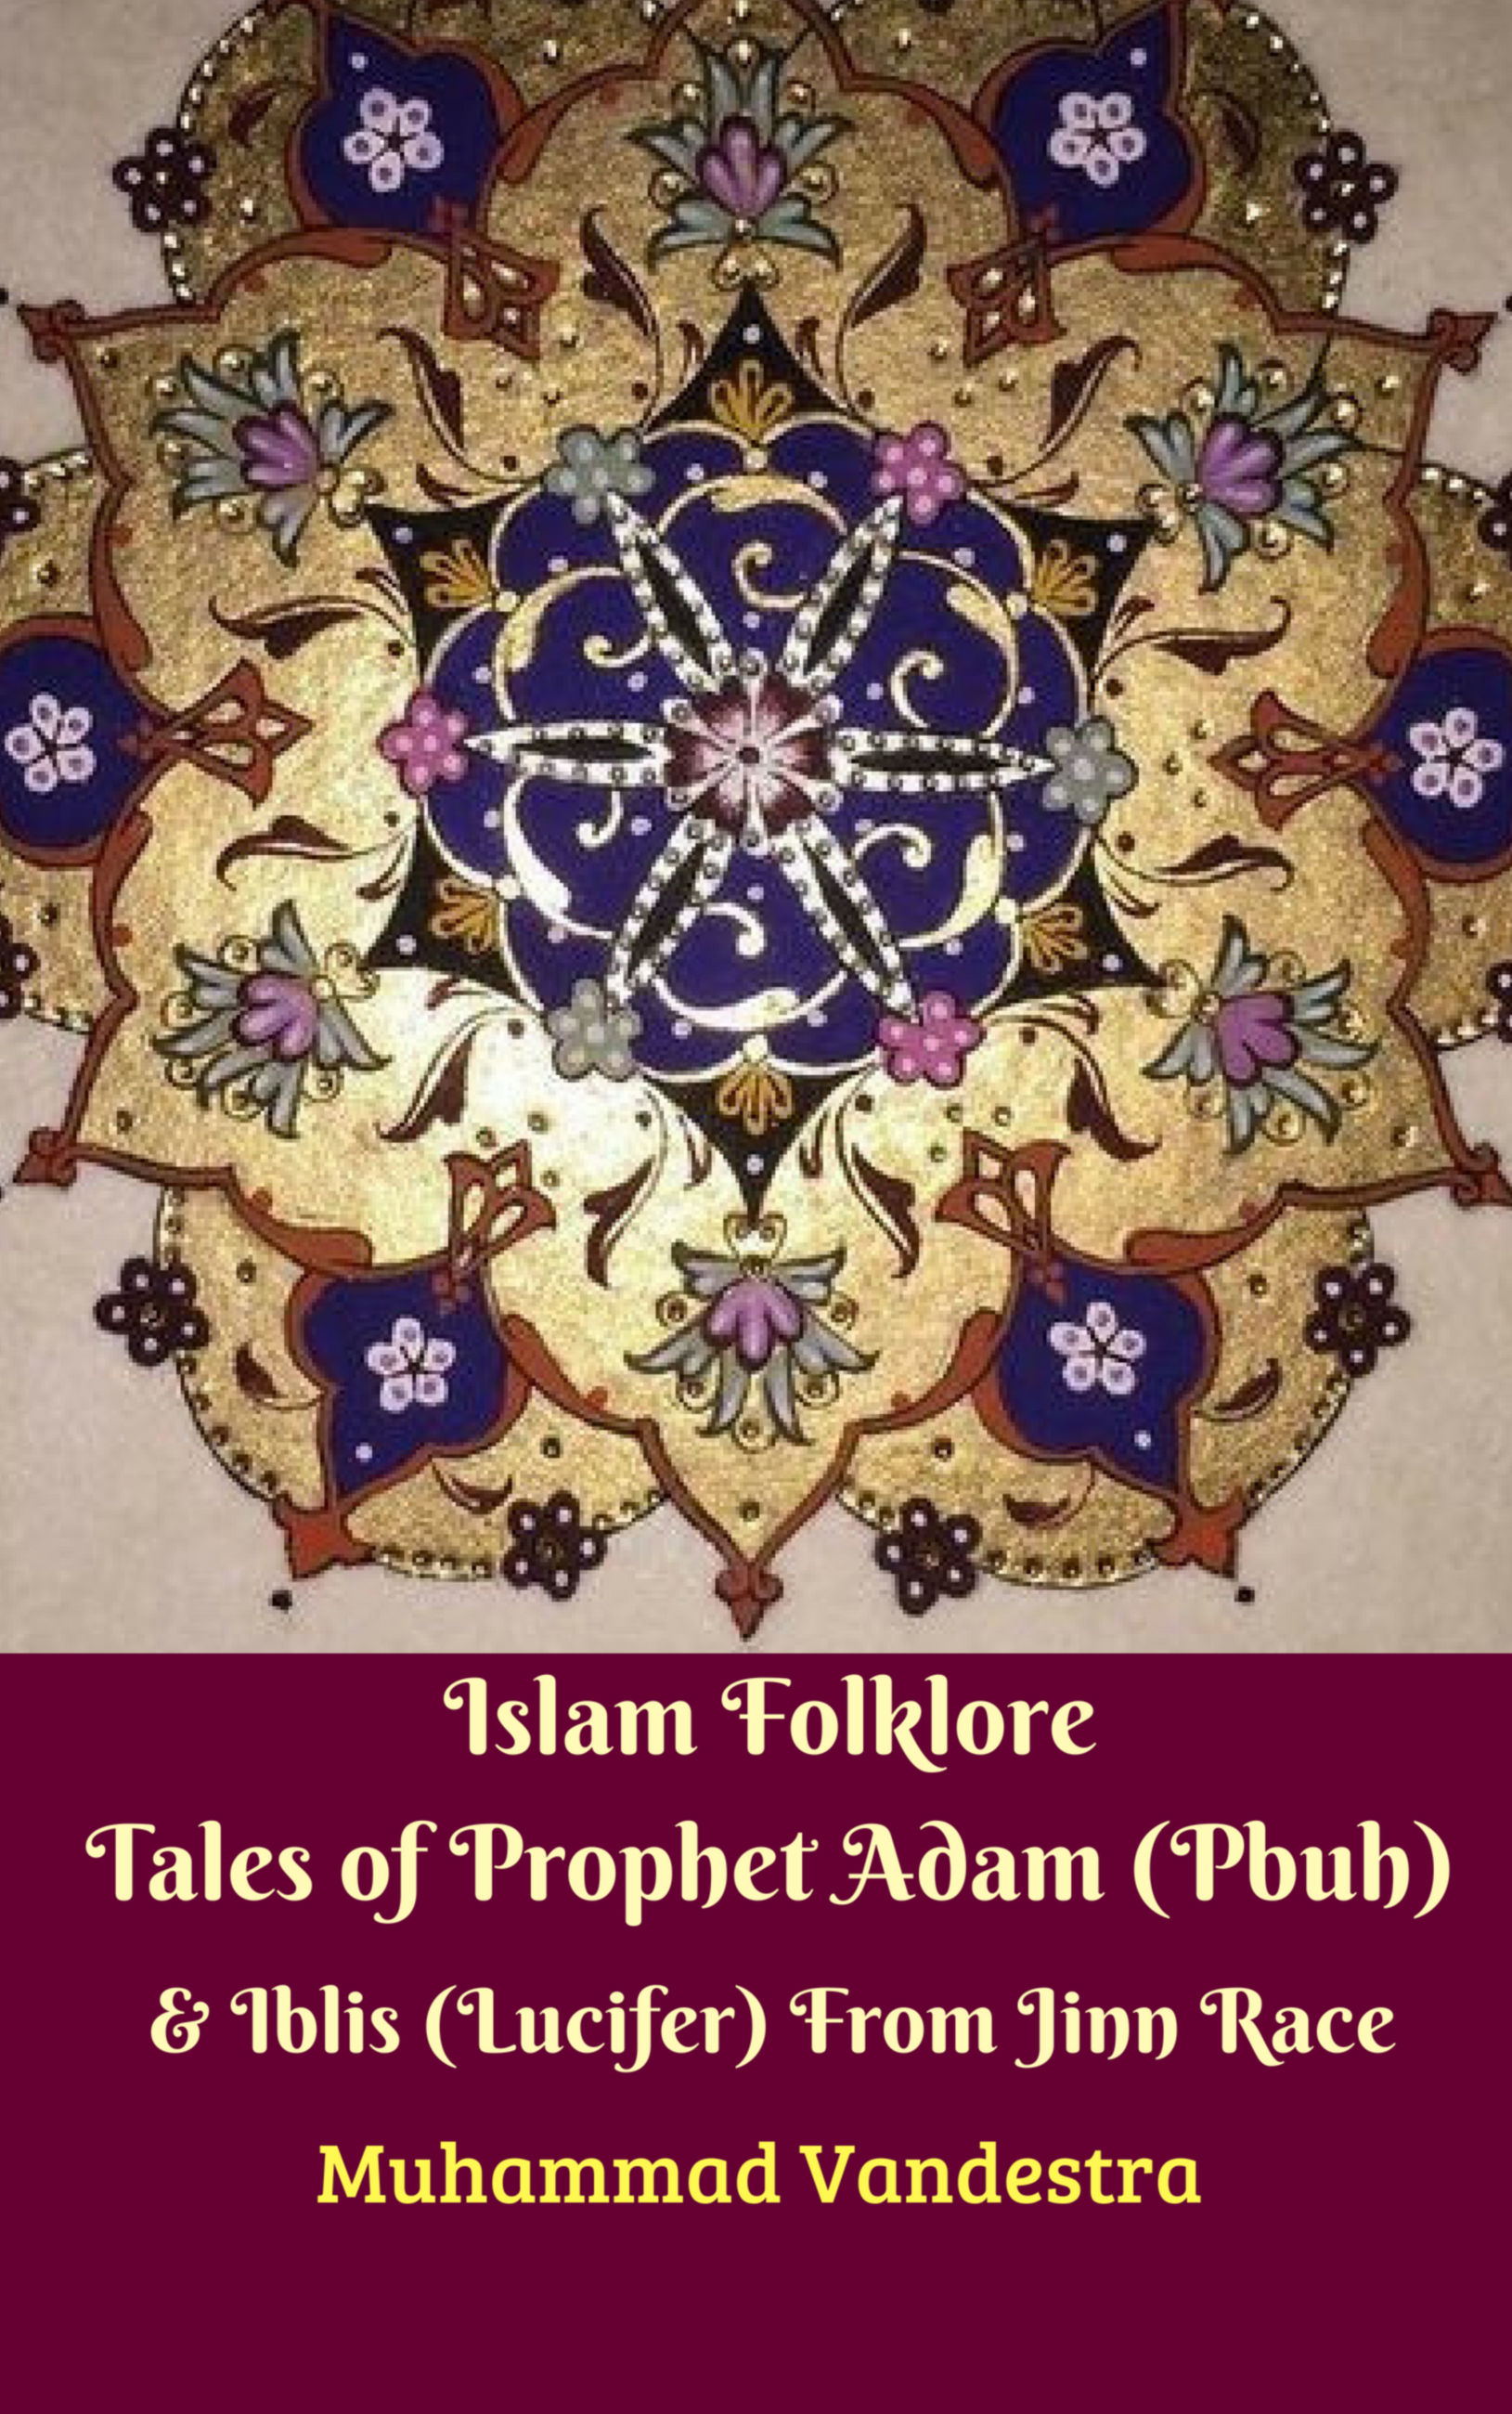 Islam Folklore Tales of Prophet Adam (Pbuh) & Iblis (Lucifer) From Jinn Race By Muhammad Vandestra